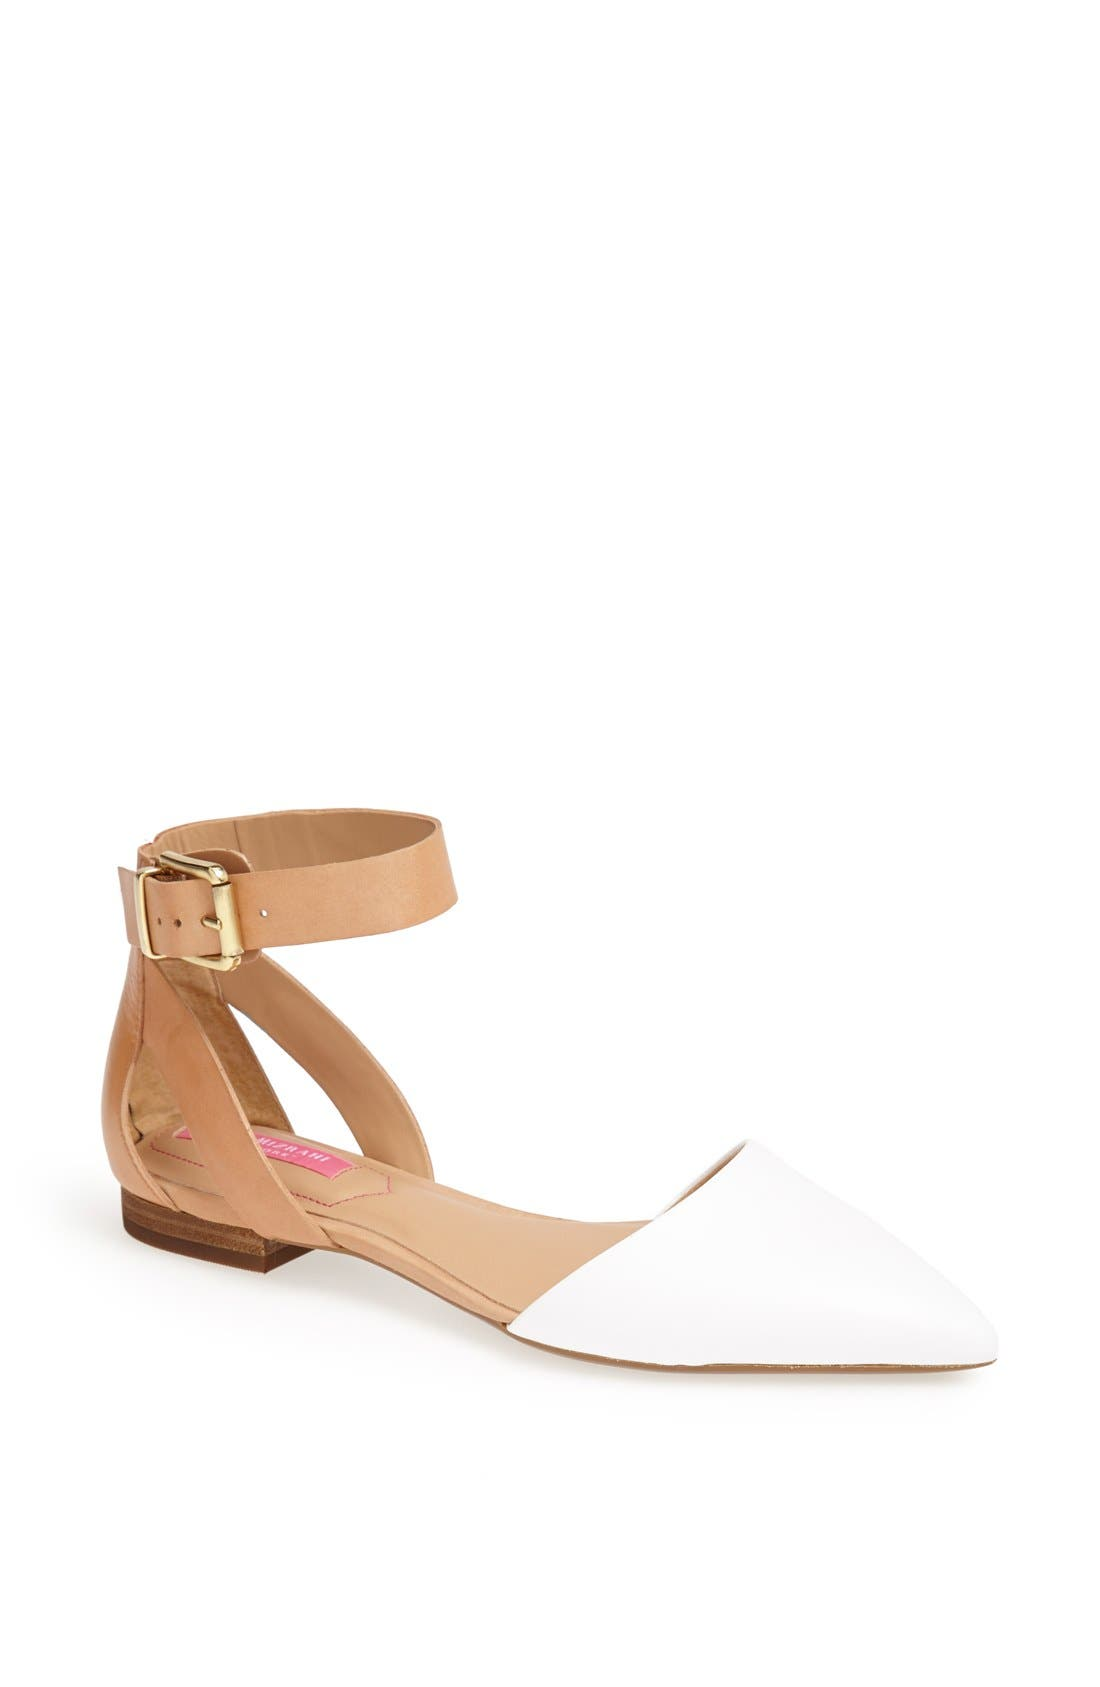 Alternate Image 1 Selected - Isaac Mizrahi New York 'Evelyn' Leather Flat